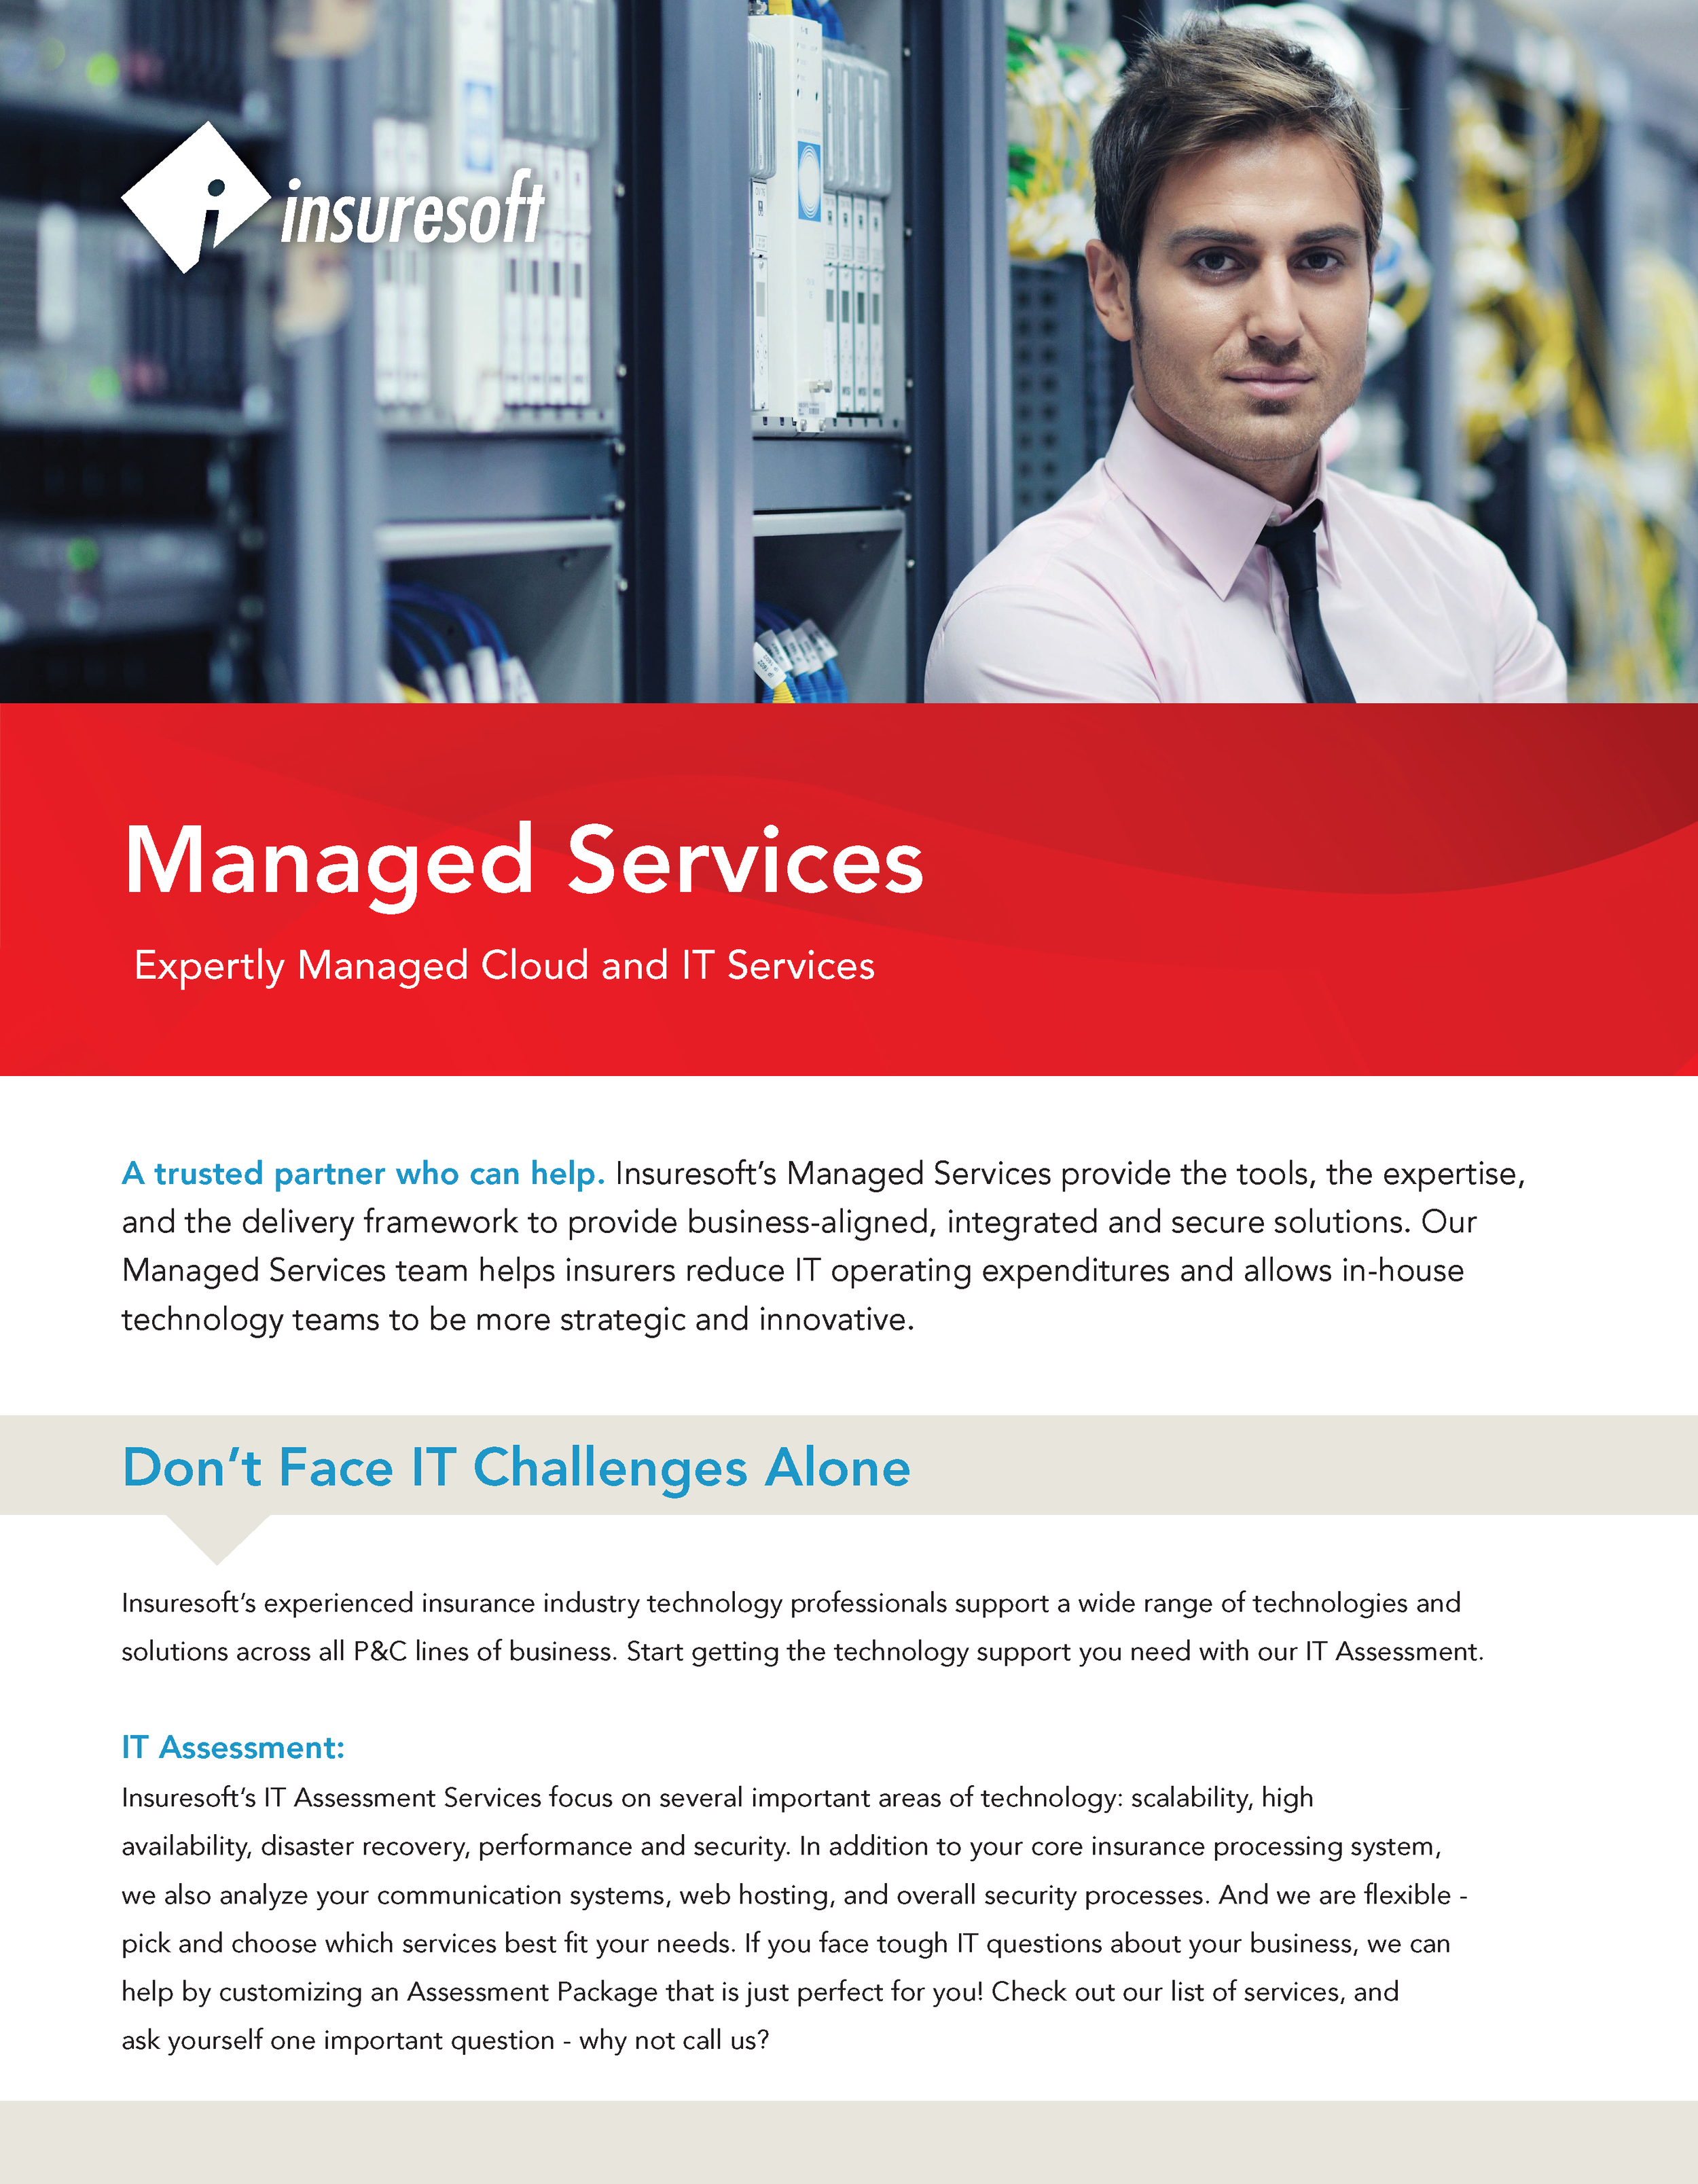 Our Managed Services team will help your business in reducing IT operating costs and allows in-house technology teams to be more strategic and innovative. Click here for the Diamond Manages Services Datasheet.